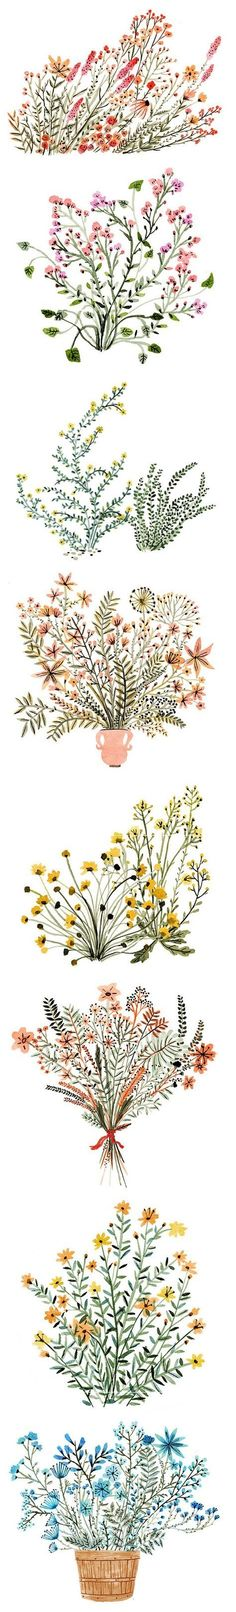 Dainty watercolor flowers, by Vikki Chu #art #journal